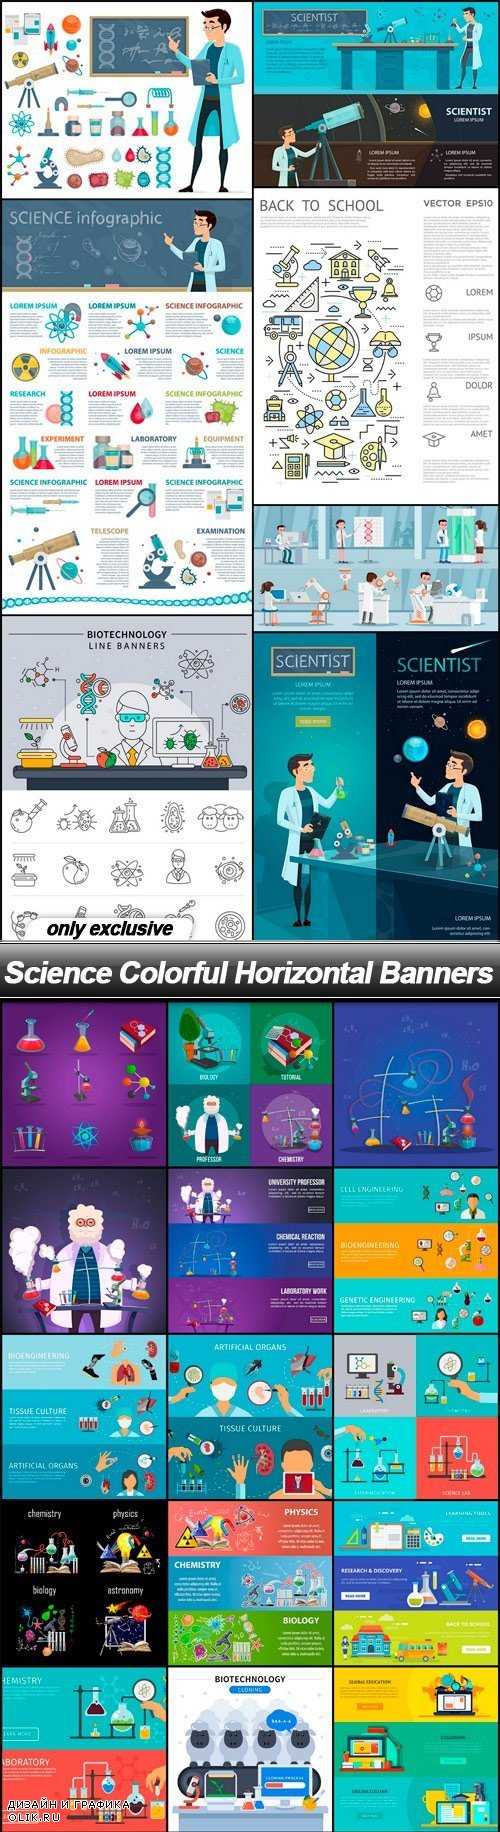 Science Colorful Horizontal Banners - 25 EPS